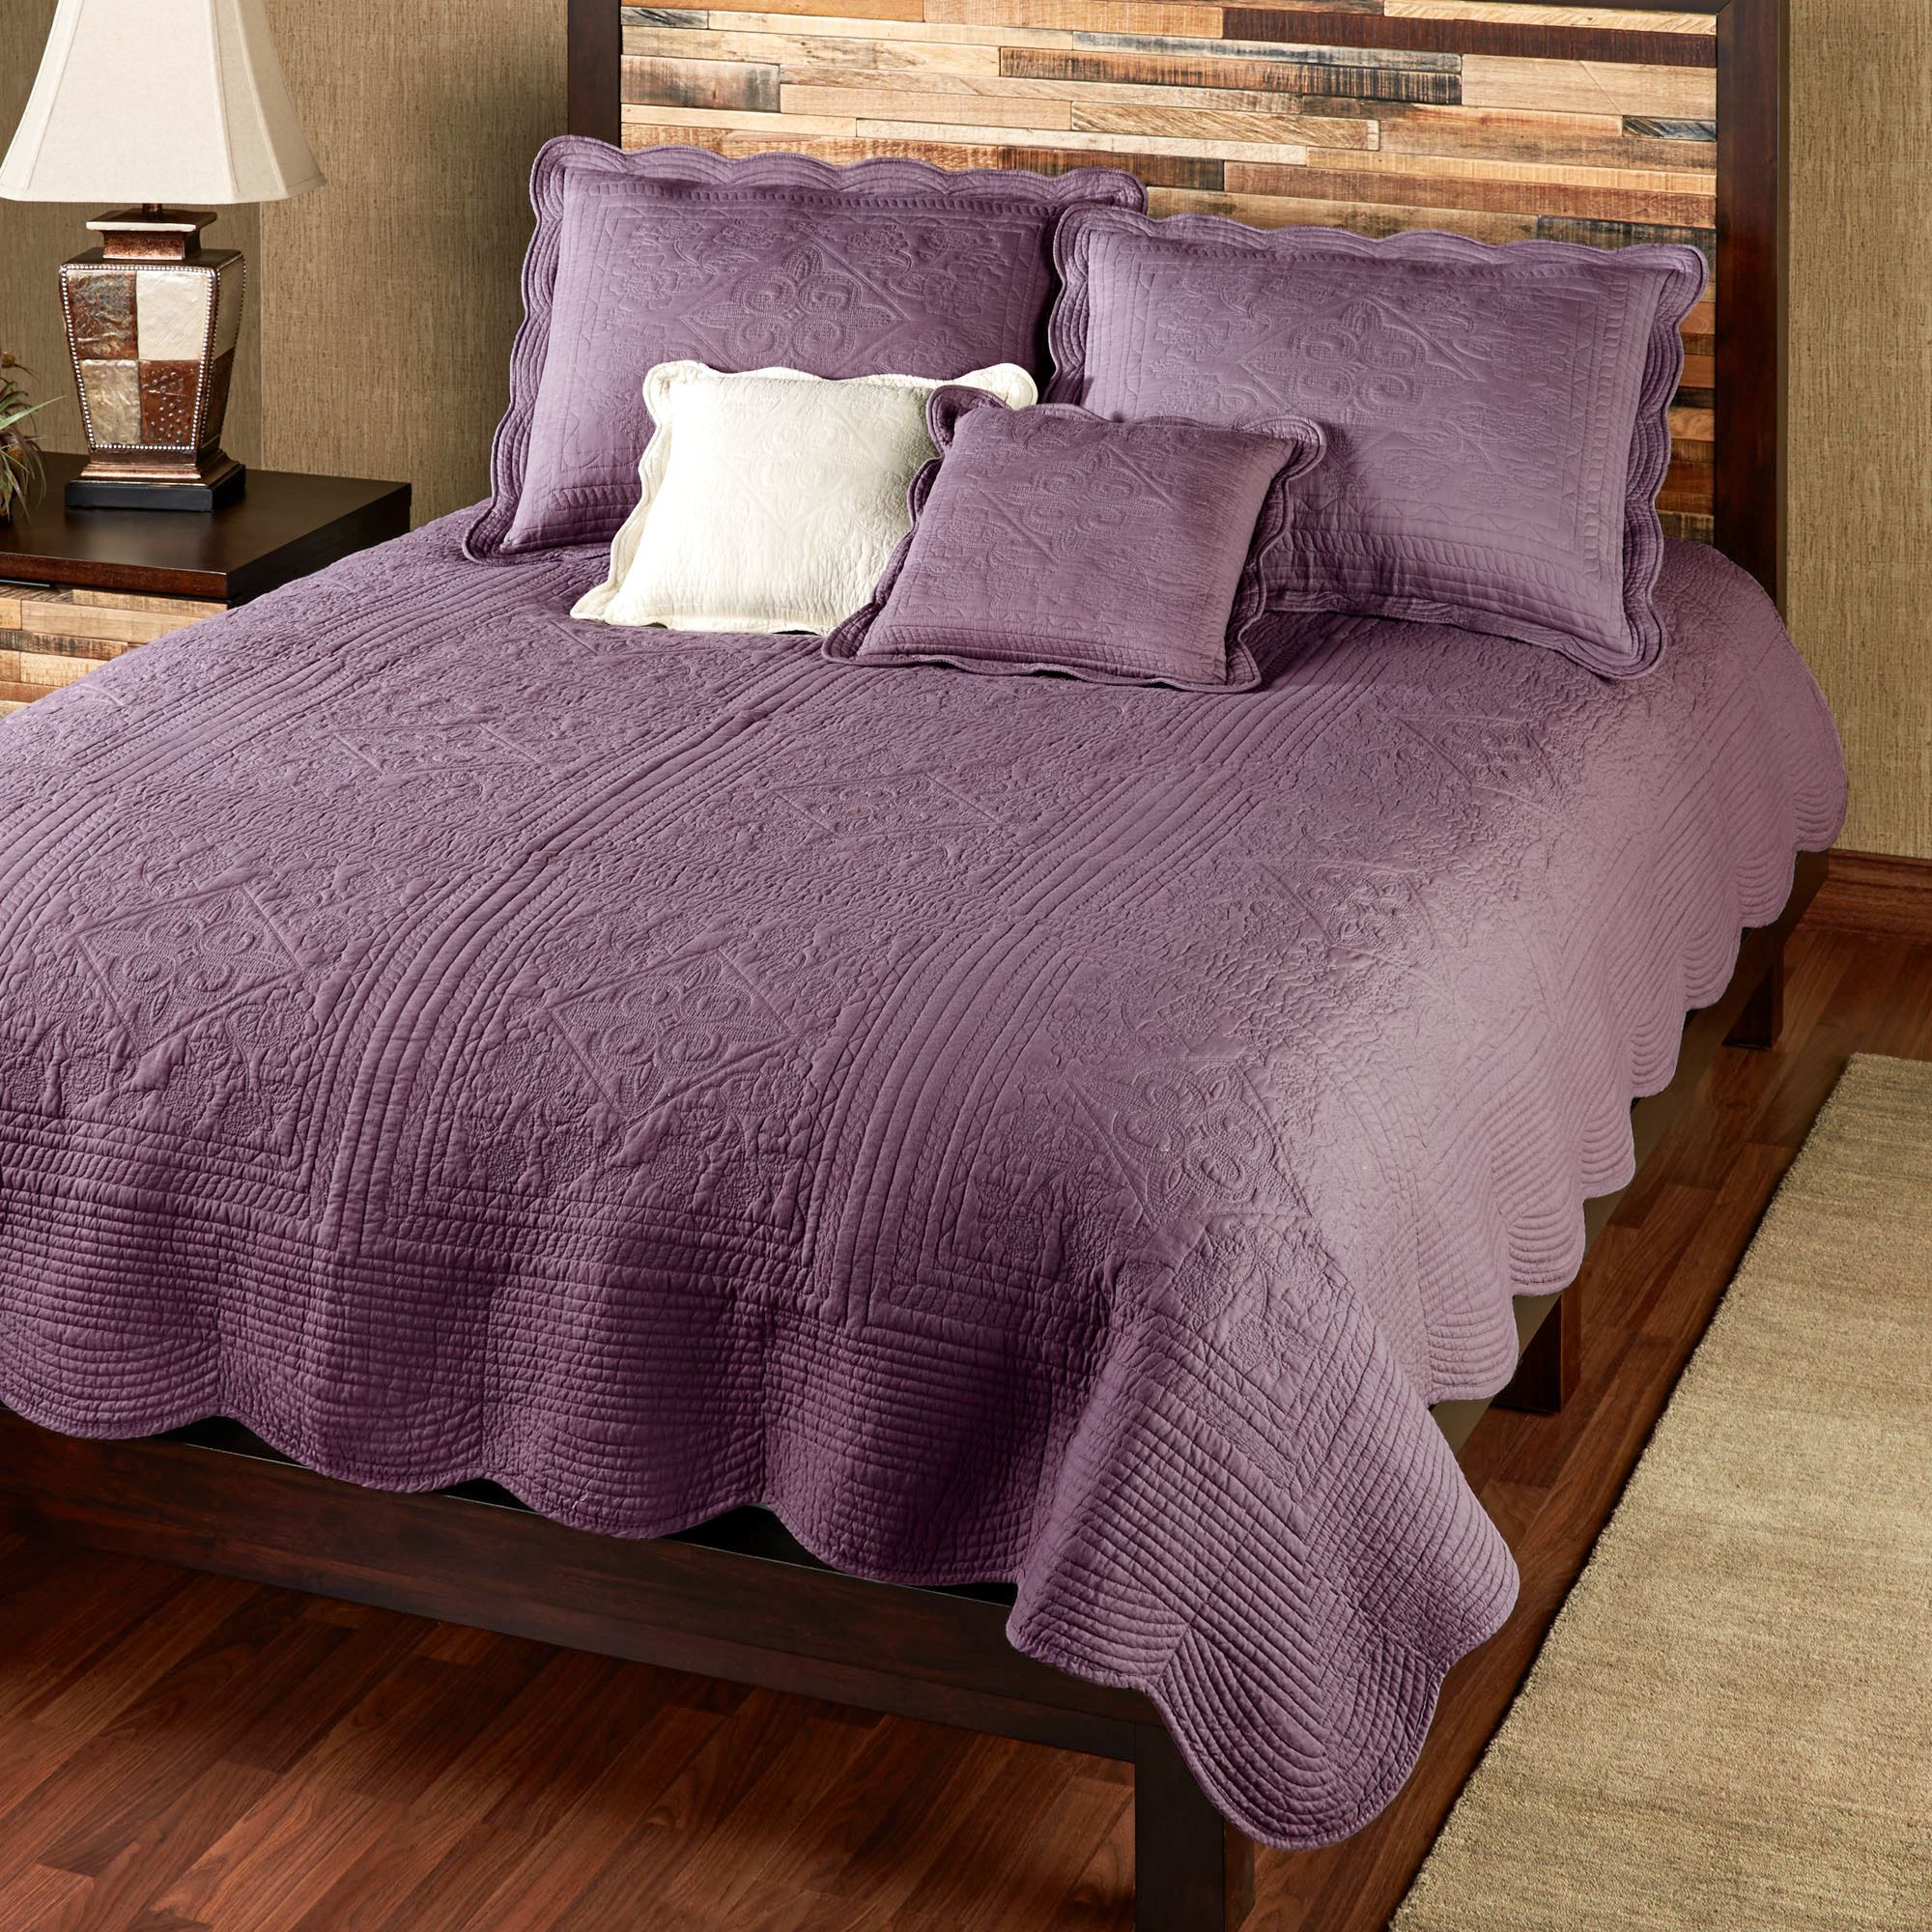 cool bedroom size king your purple cover personalize set me continue super duvet appealing velvet covers pillowcase with plum quilt and mattmills